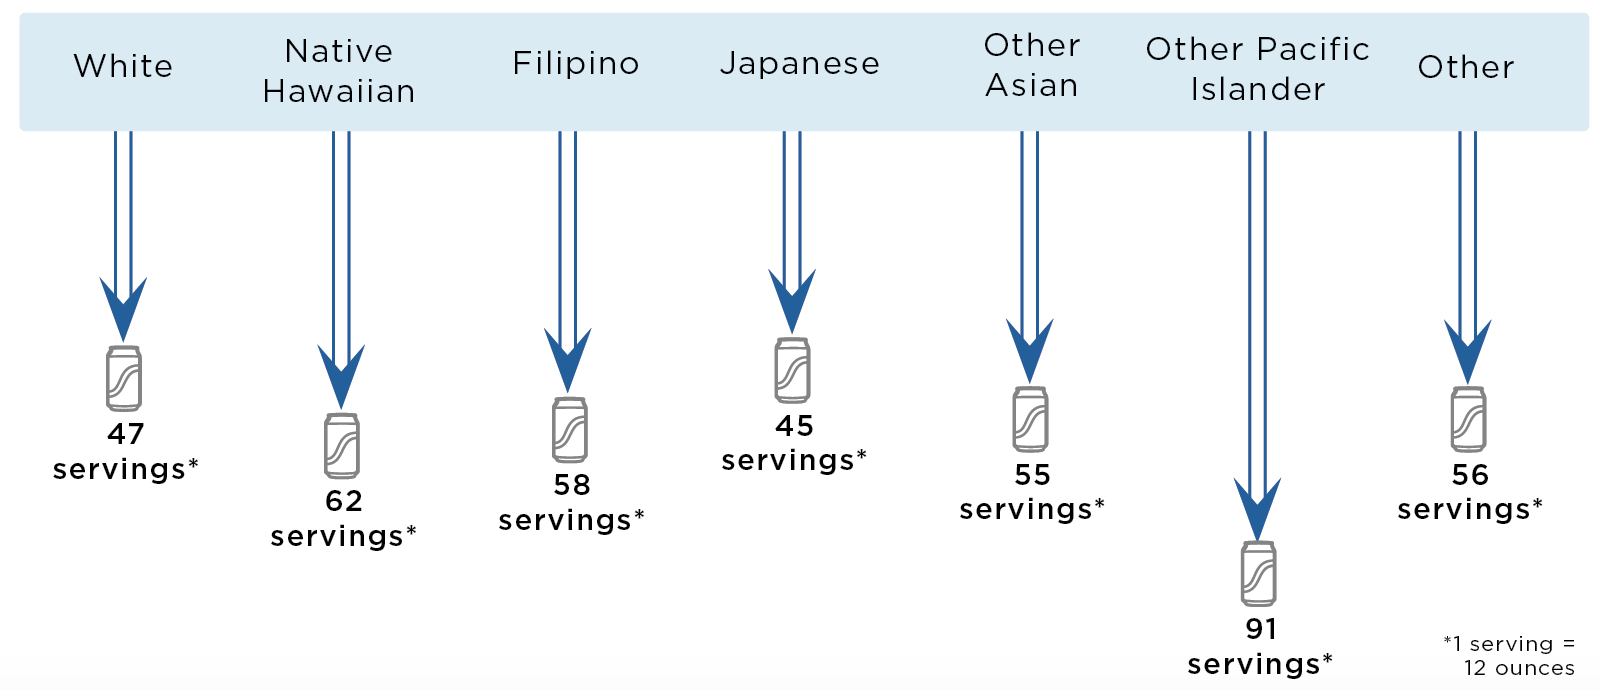 In the first year of fee implementation, White residents would drink 47 fewer 12 ounce servings of sugary drinks per person; Native Hawaiian residents would drink 62 fewer 12 ounce servings of sugary drinks per person; Filipino residents would drink 58 fewer 12 ounce servings of sugary drinks per person; Japanese residents would drink 45 fewer 12 ounce servings of sugary drinks per person; Other Asian residents would drink 55 fewer 12 ounce servings of sugary drinks per person; Other Pacific Islander residents would drink 91 fewer 12 ounce servings of sugary drinks per person; and Residents of Other races would drink 56 fewer 12 ounce servings of sugary drinks per person